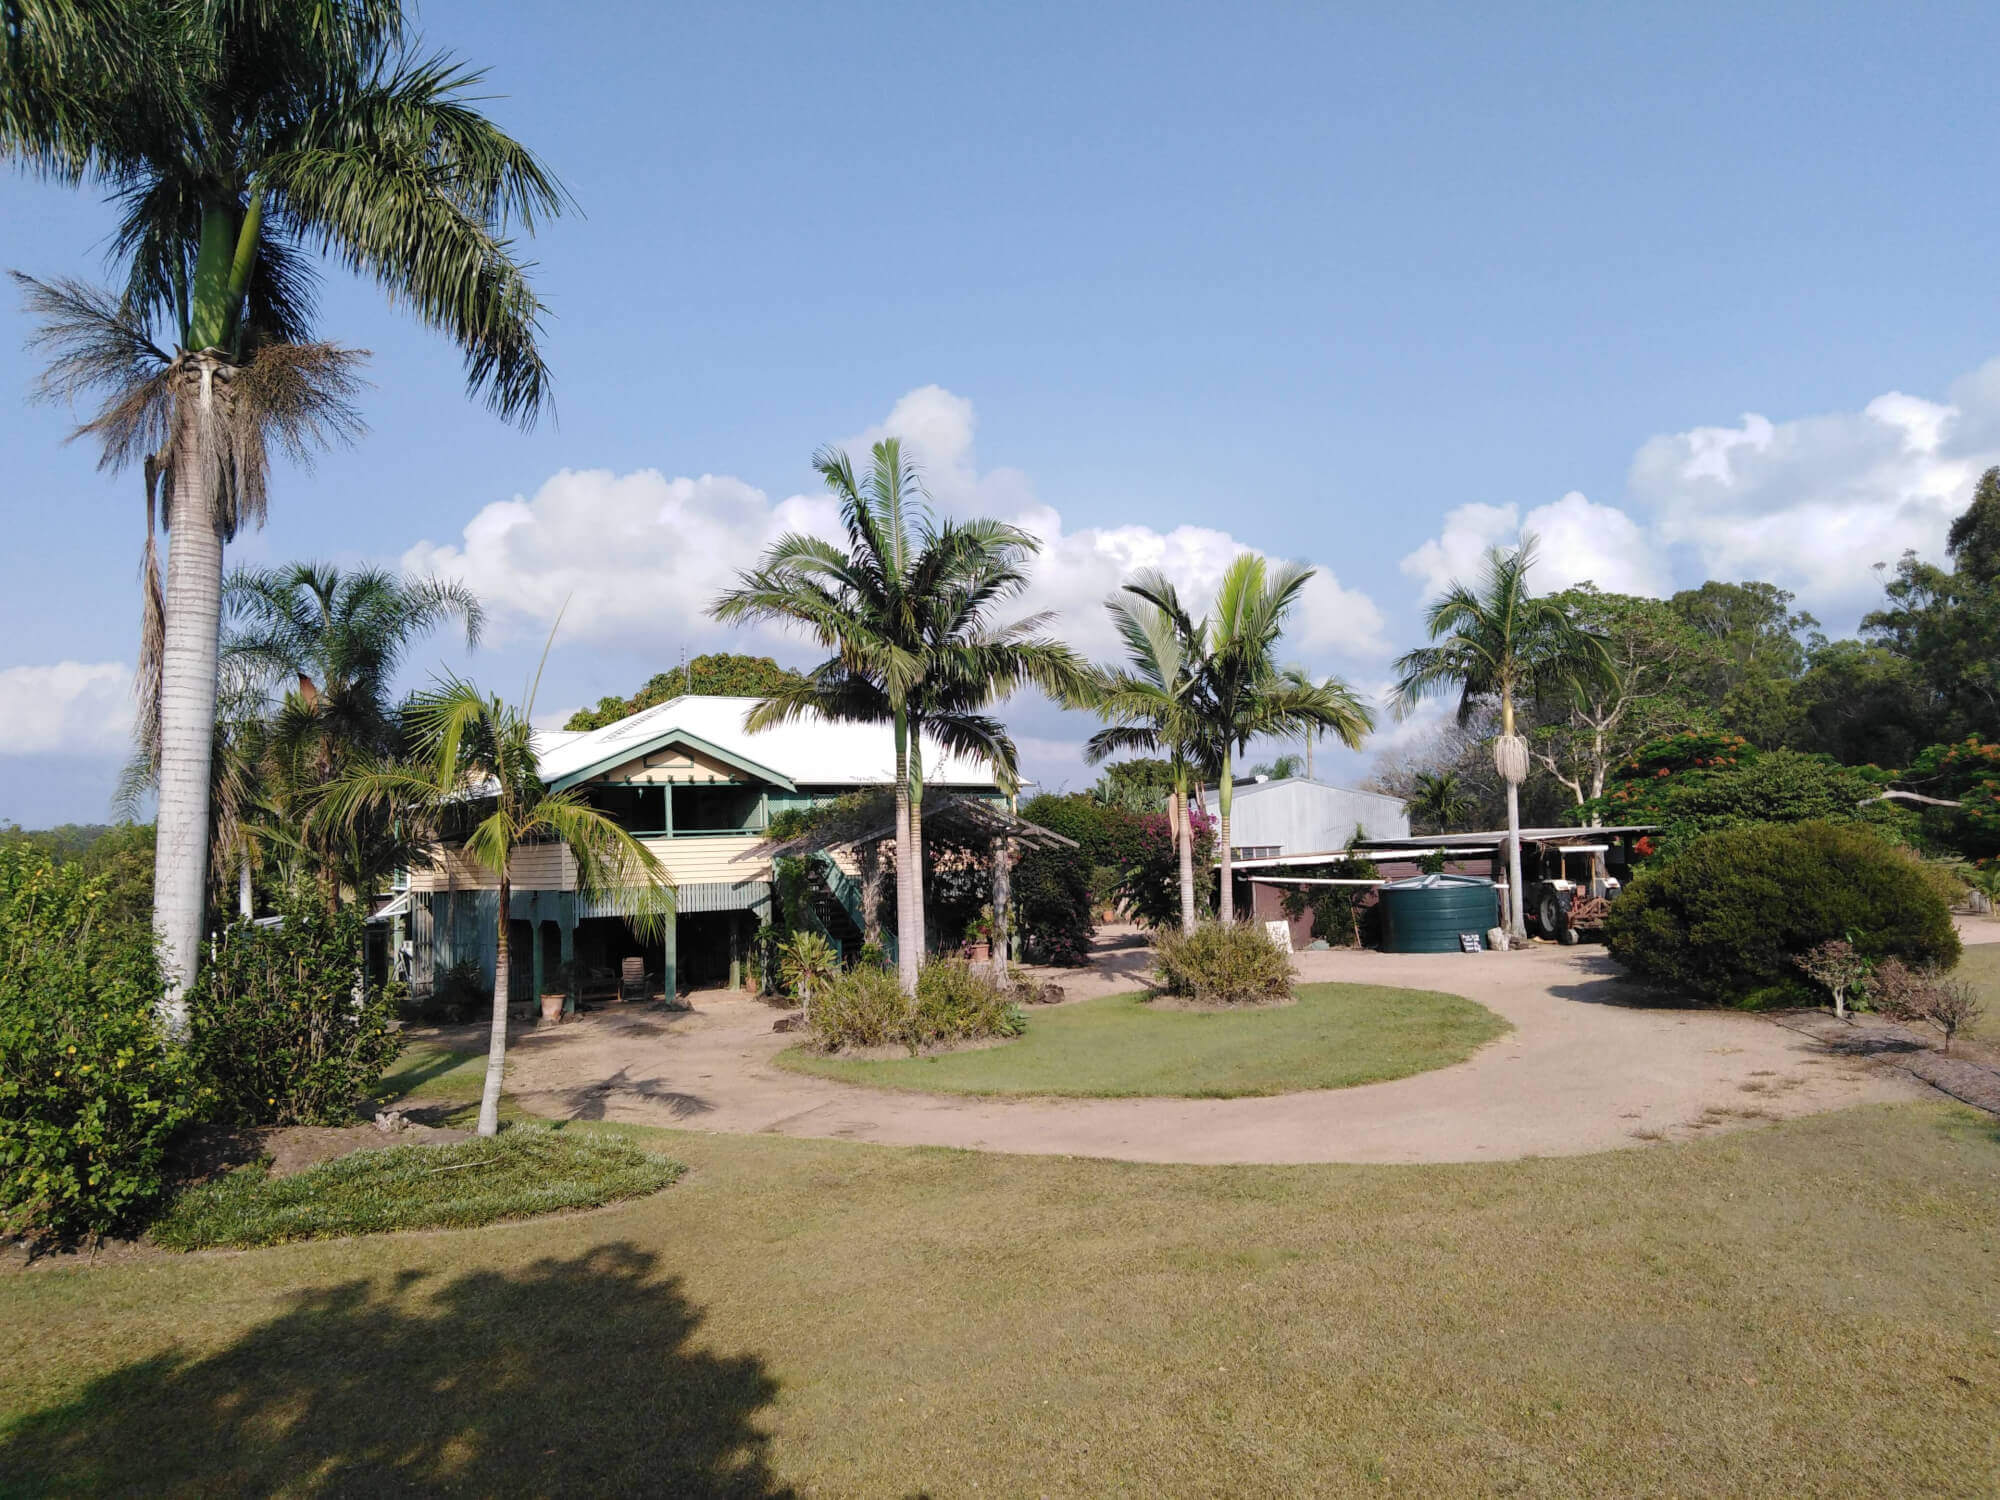 632 Doonan Bridge Road North Doonan QLD 4562